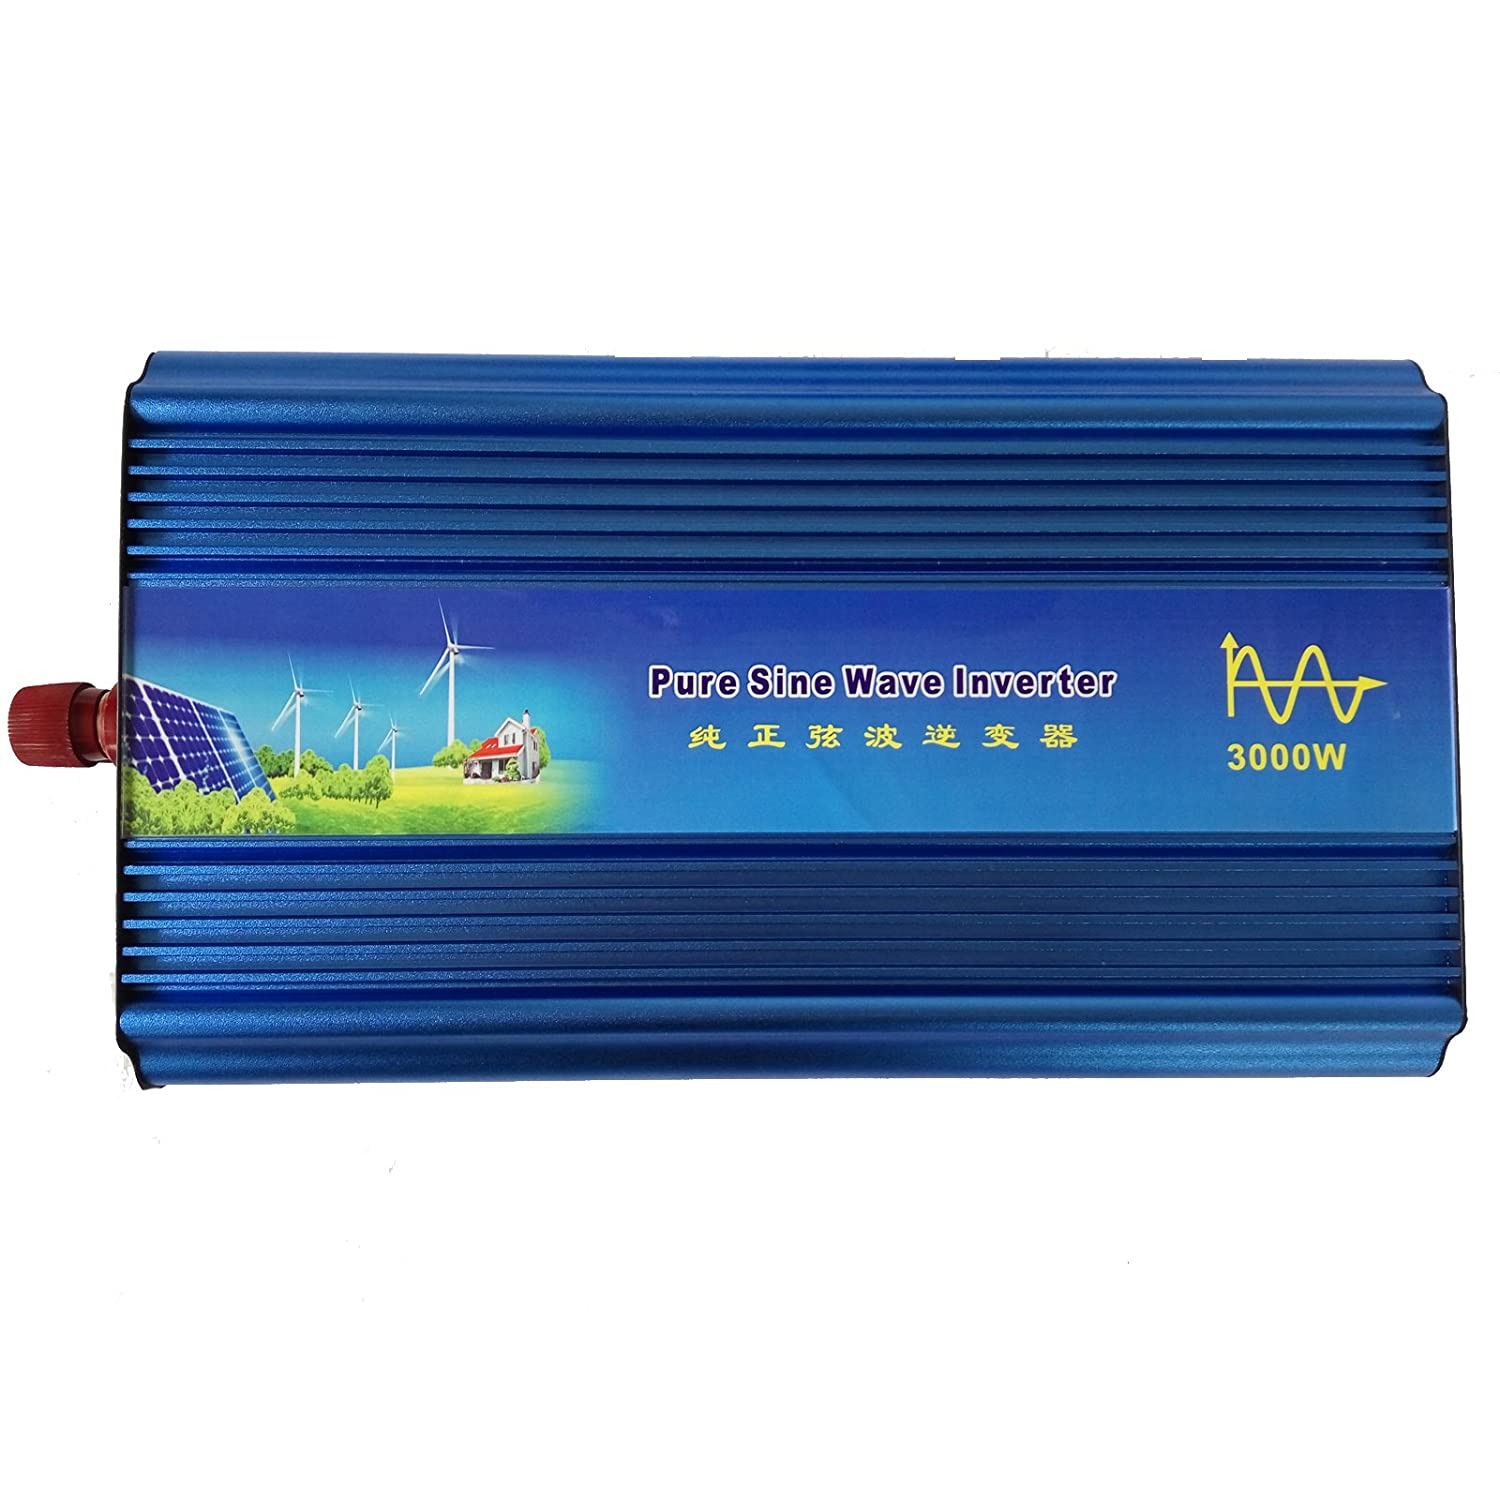 Holdwell Dc 36v To Ac 220v Ac200 240v Power Pure Sine Wave Inverter Circuit Diagram In Addition 3000w Car Electronics